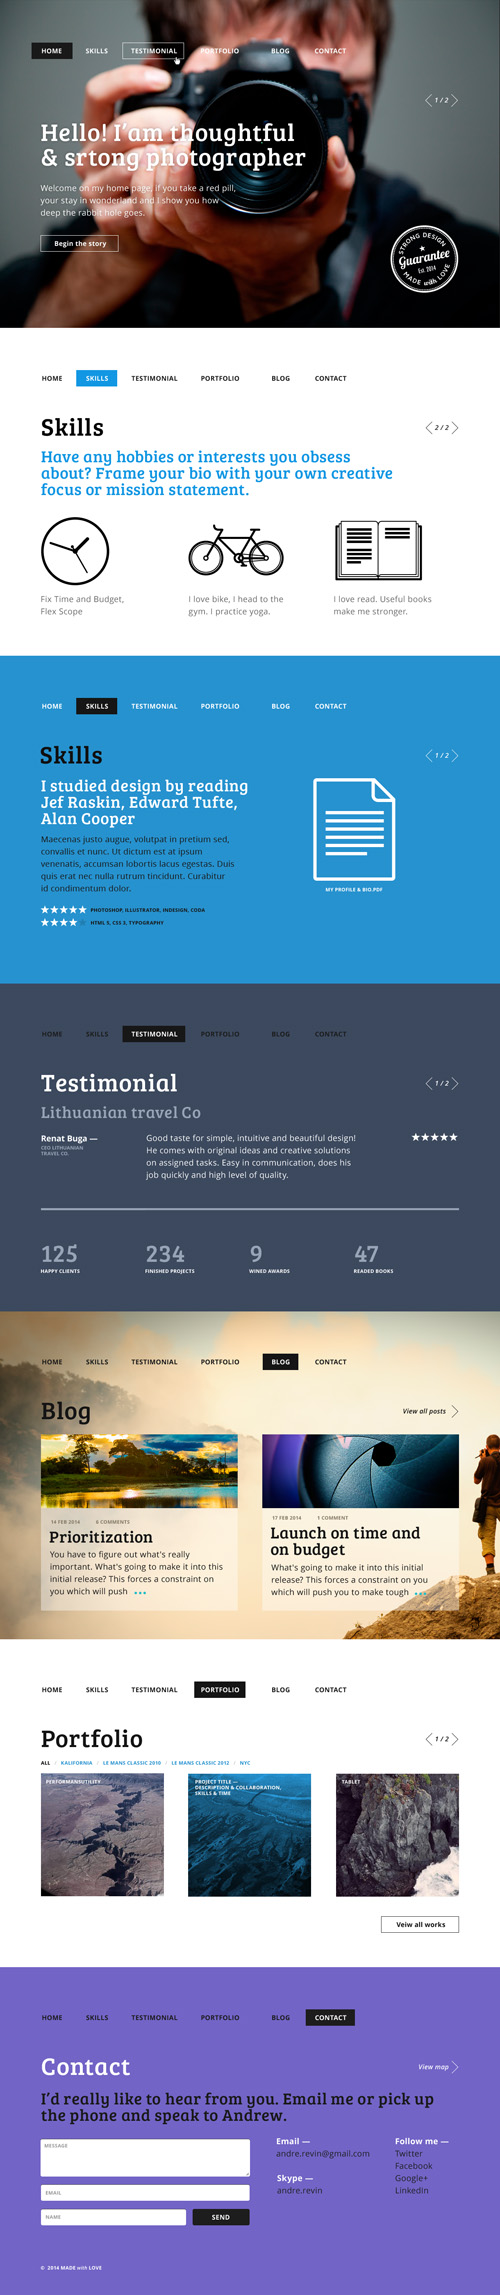 Redman - One Page PSD Template